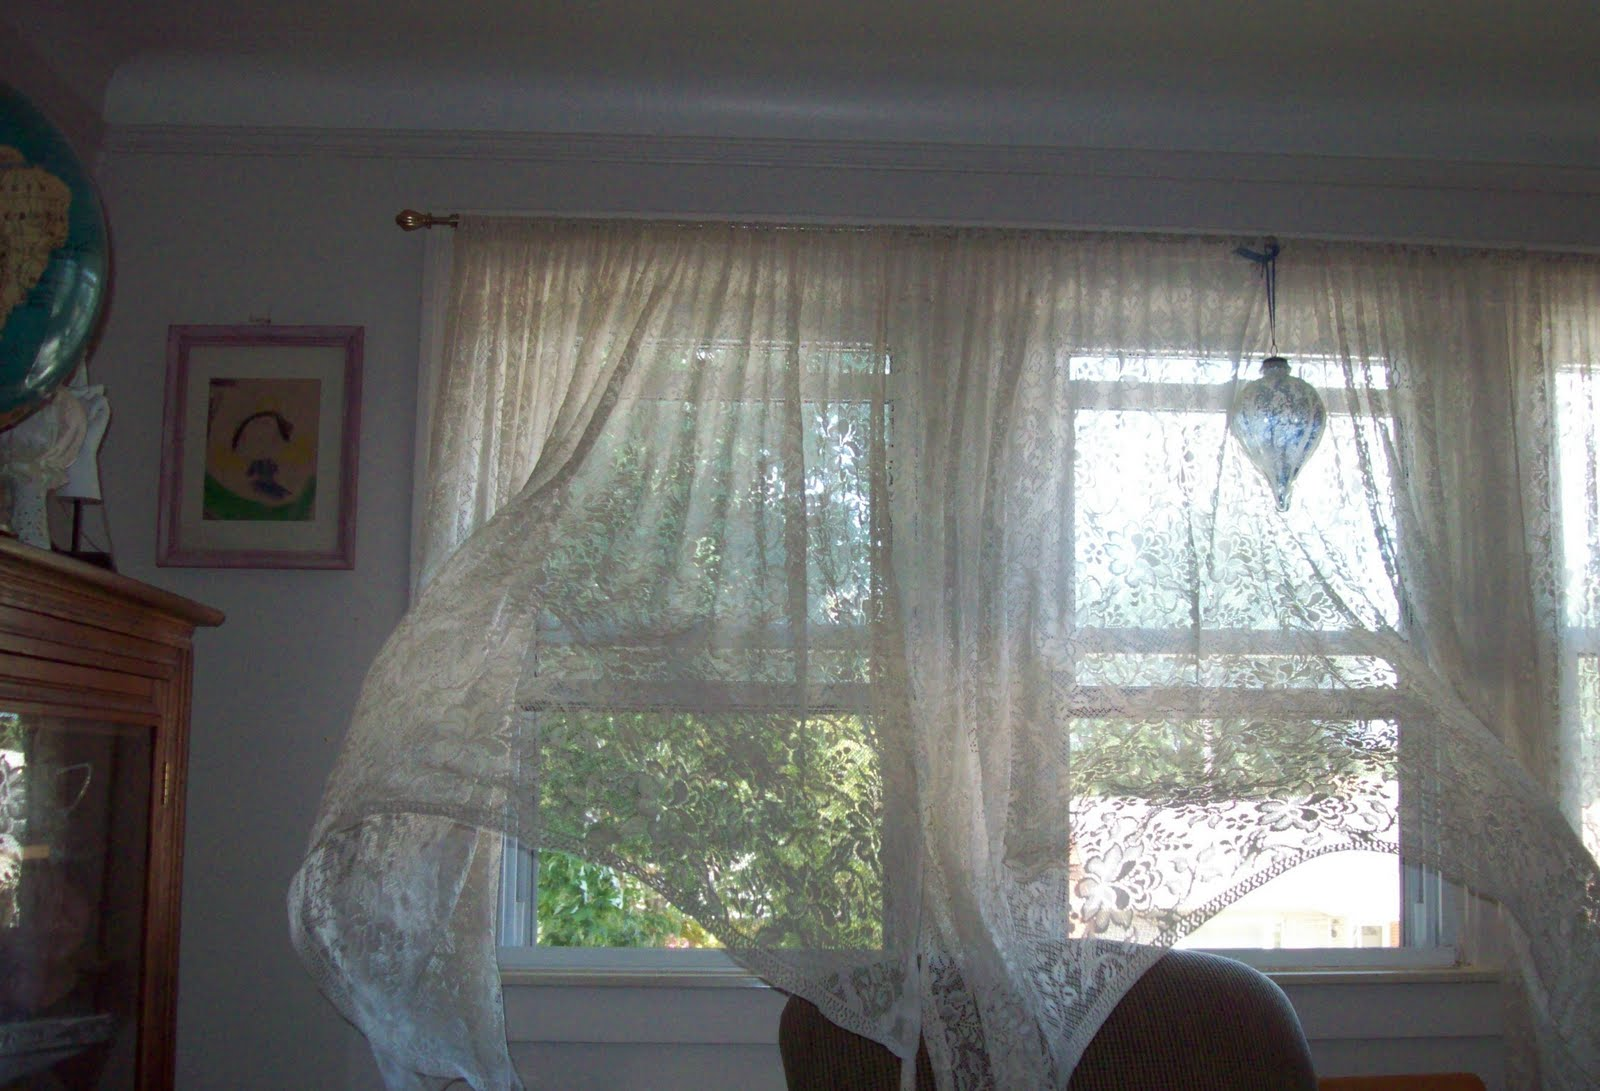 Open window with curtains blowing - Wind Curtain Wind Blowing Curtains